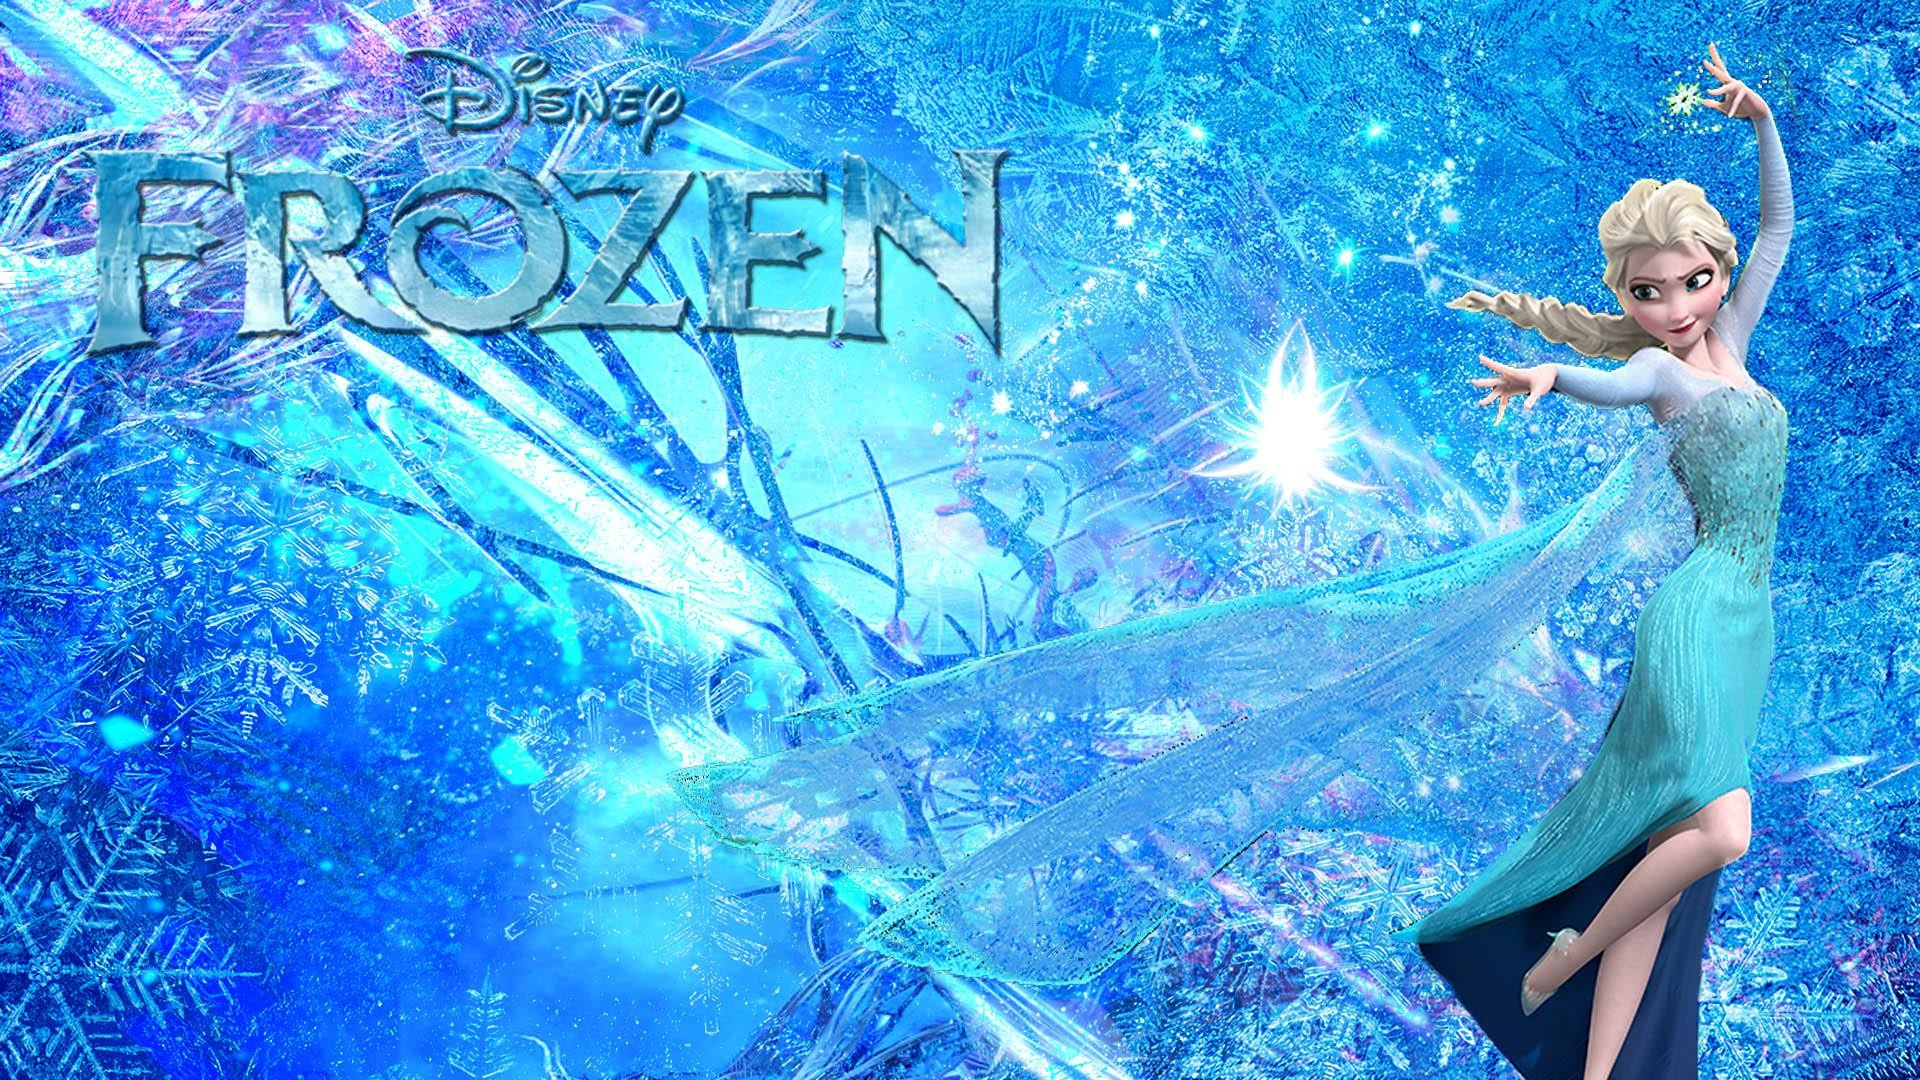 Res: 1920x1080, Elsa Frozen Wallpapers HD.